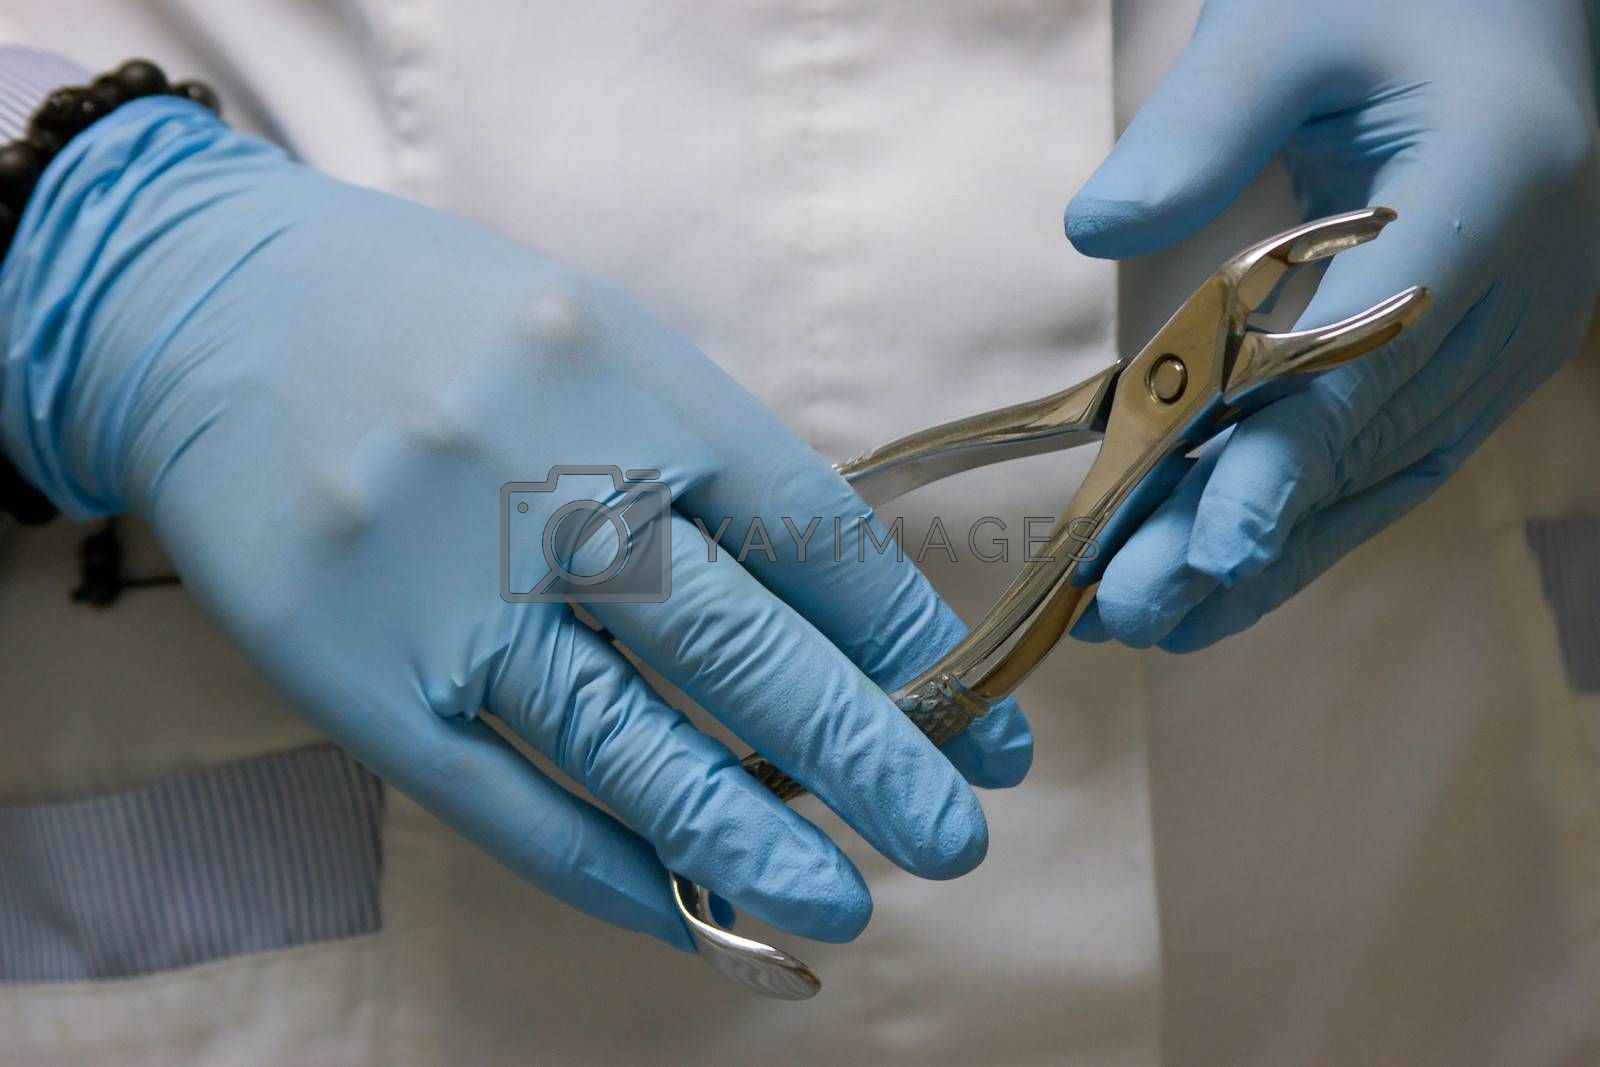 dentists hands in blue medical gloves with dental tools